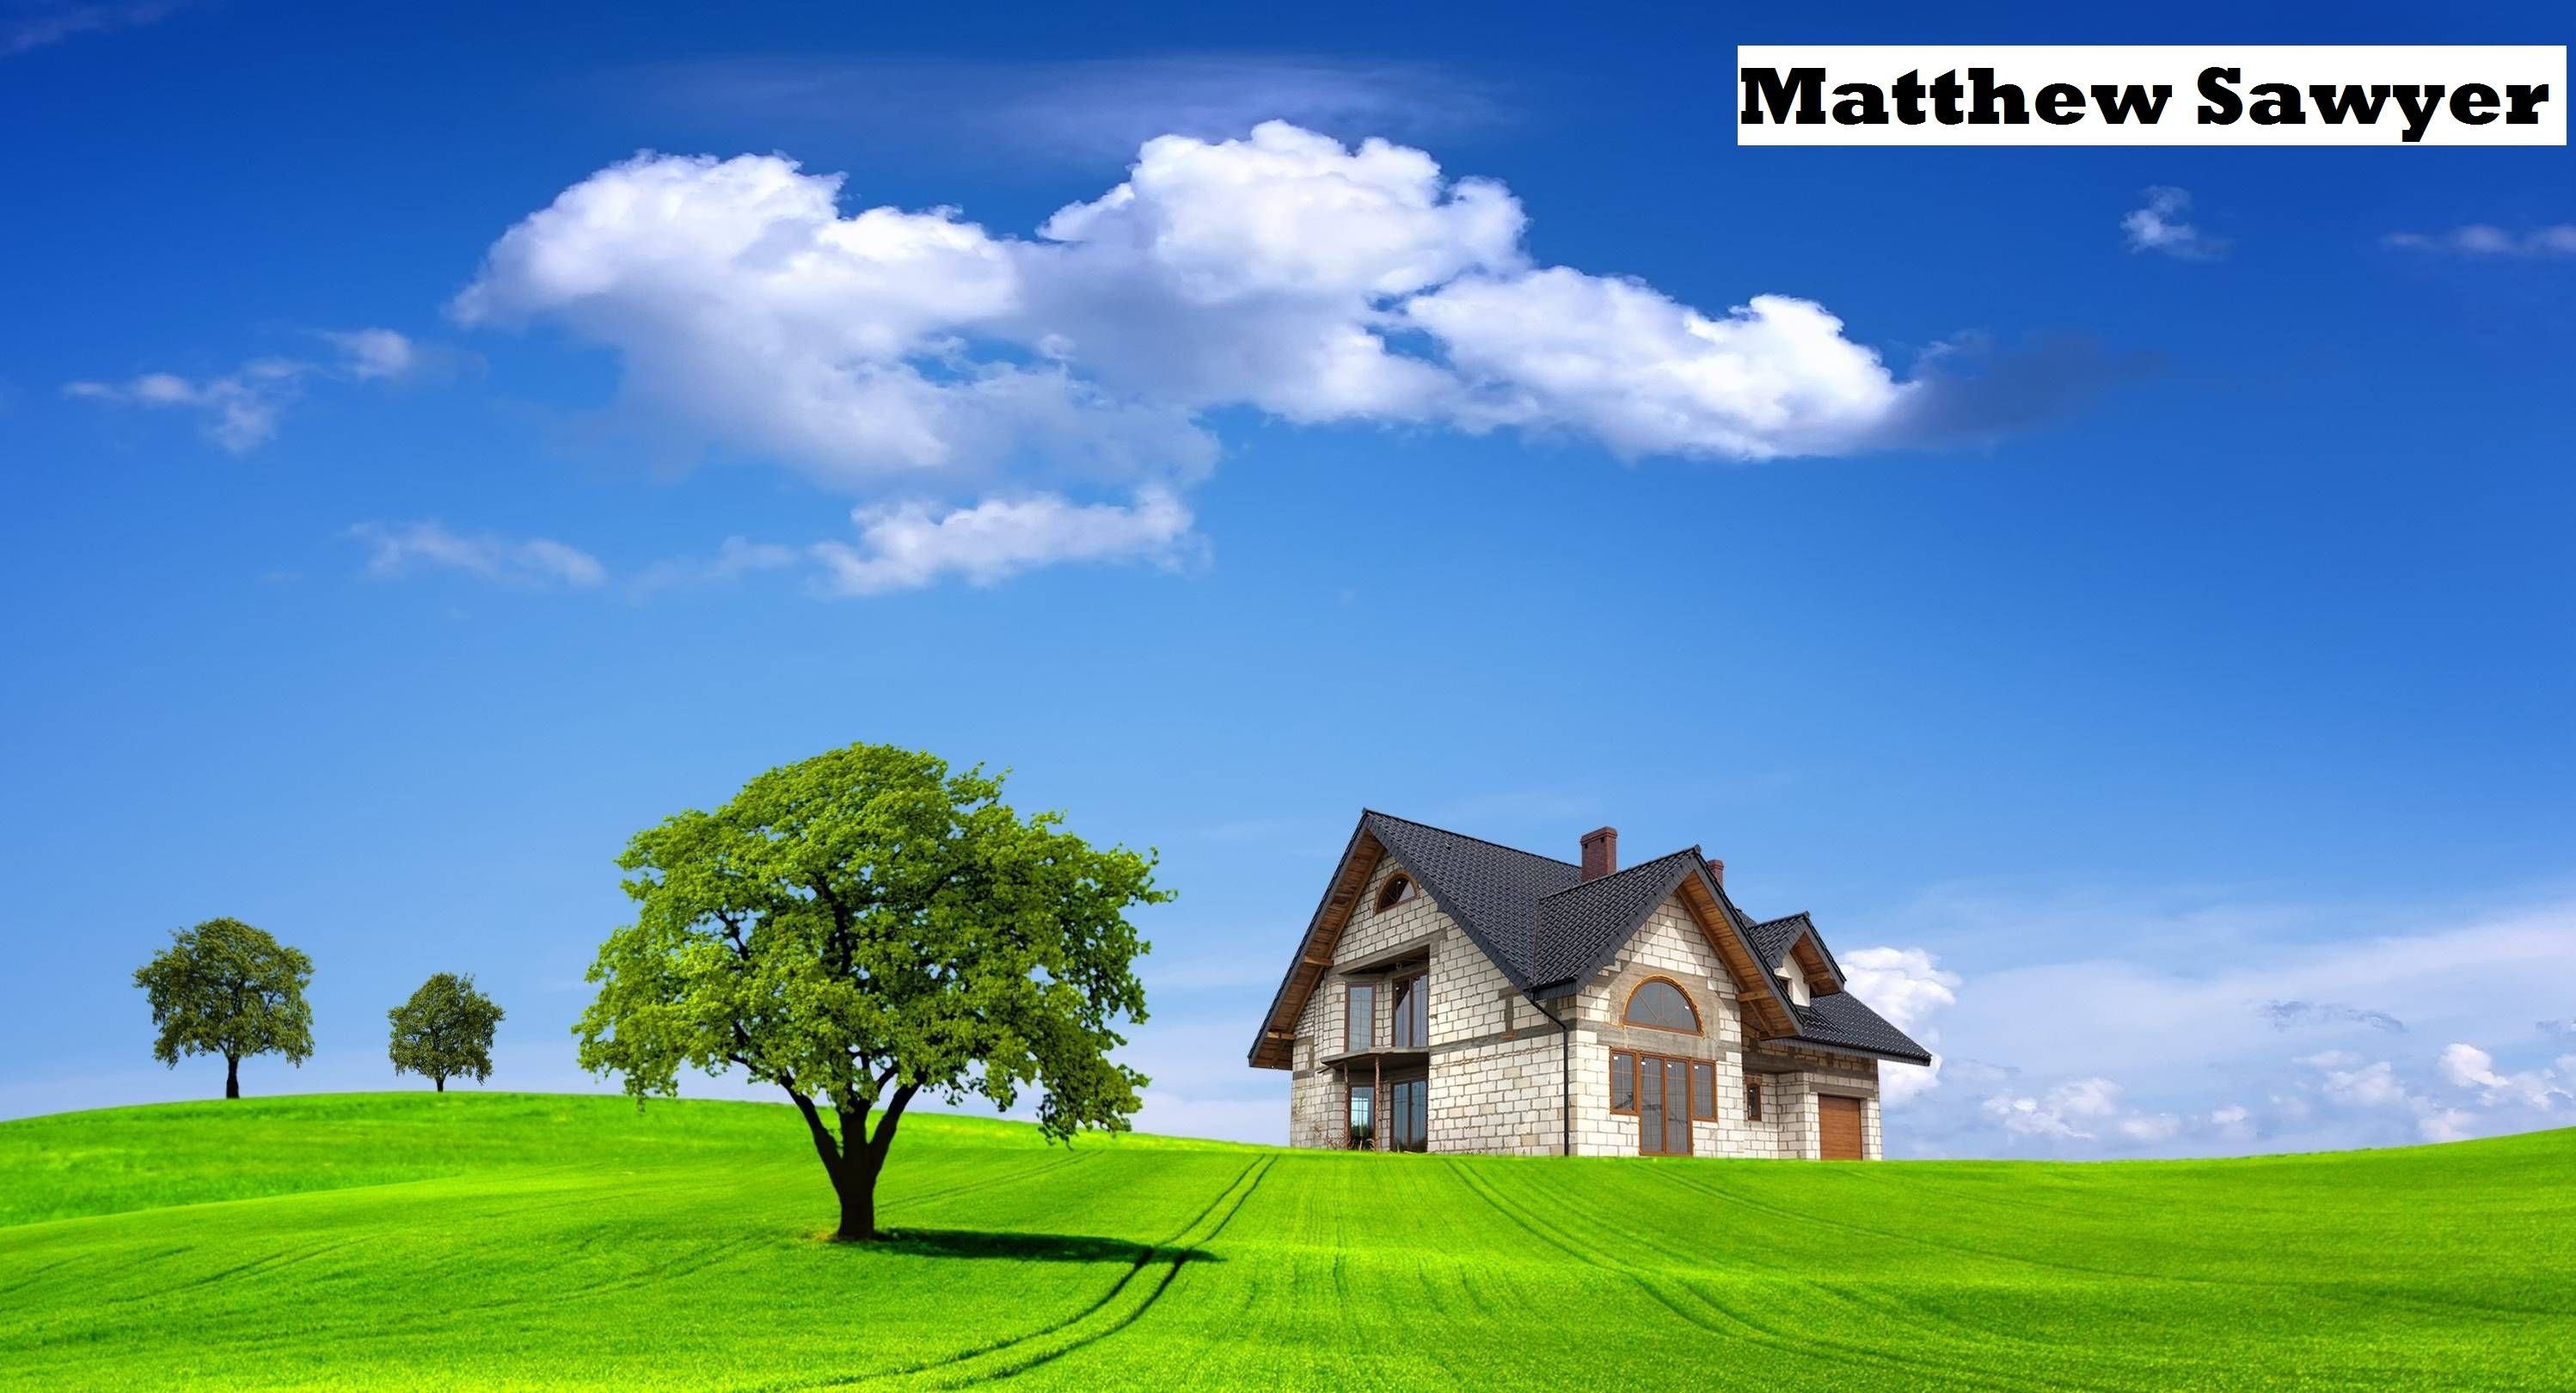 Latest Trends In Investing In Real Estate Matthew Sawyer Best Nature Wallpapers Best Nature Wallpapers Hd Nature Wallpaper